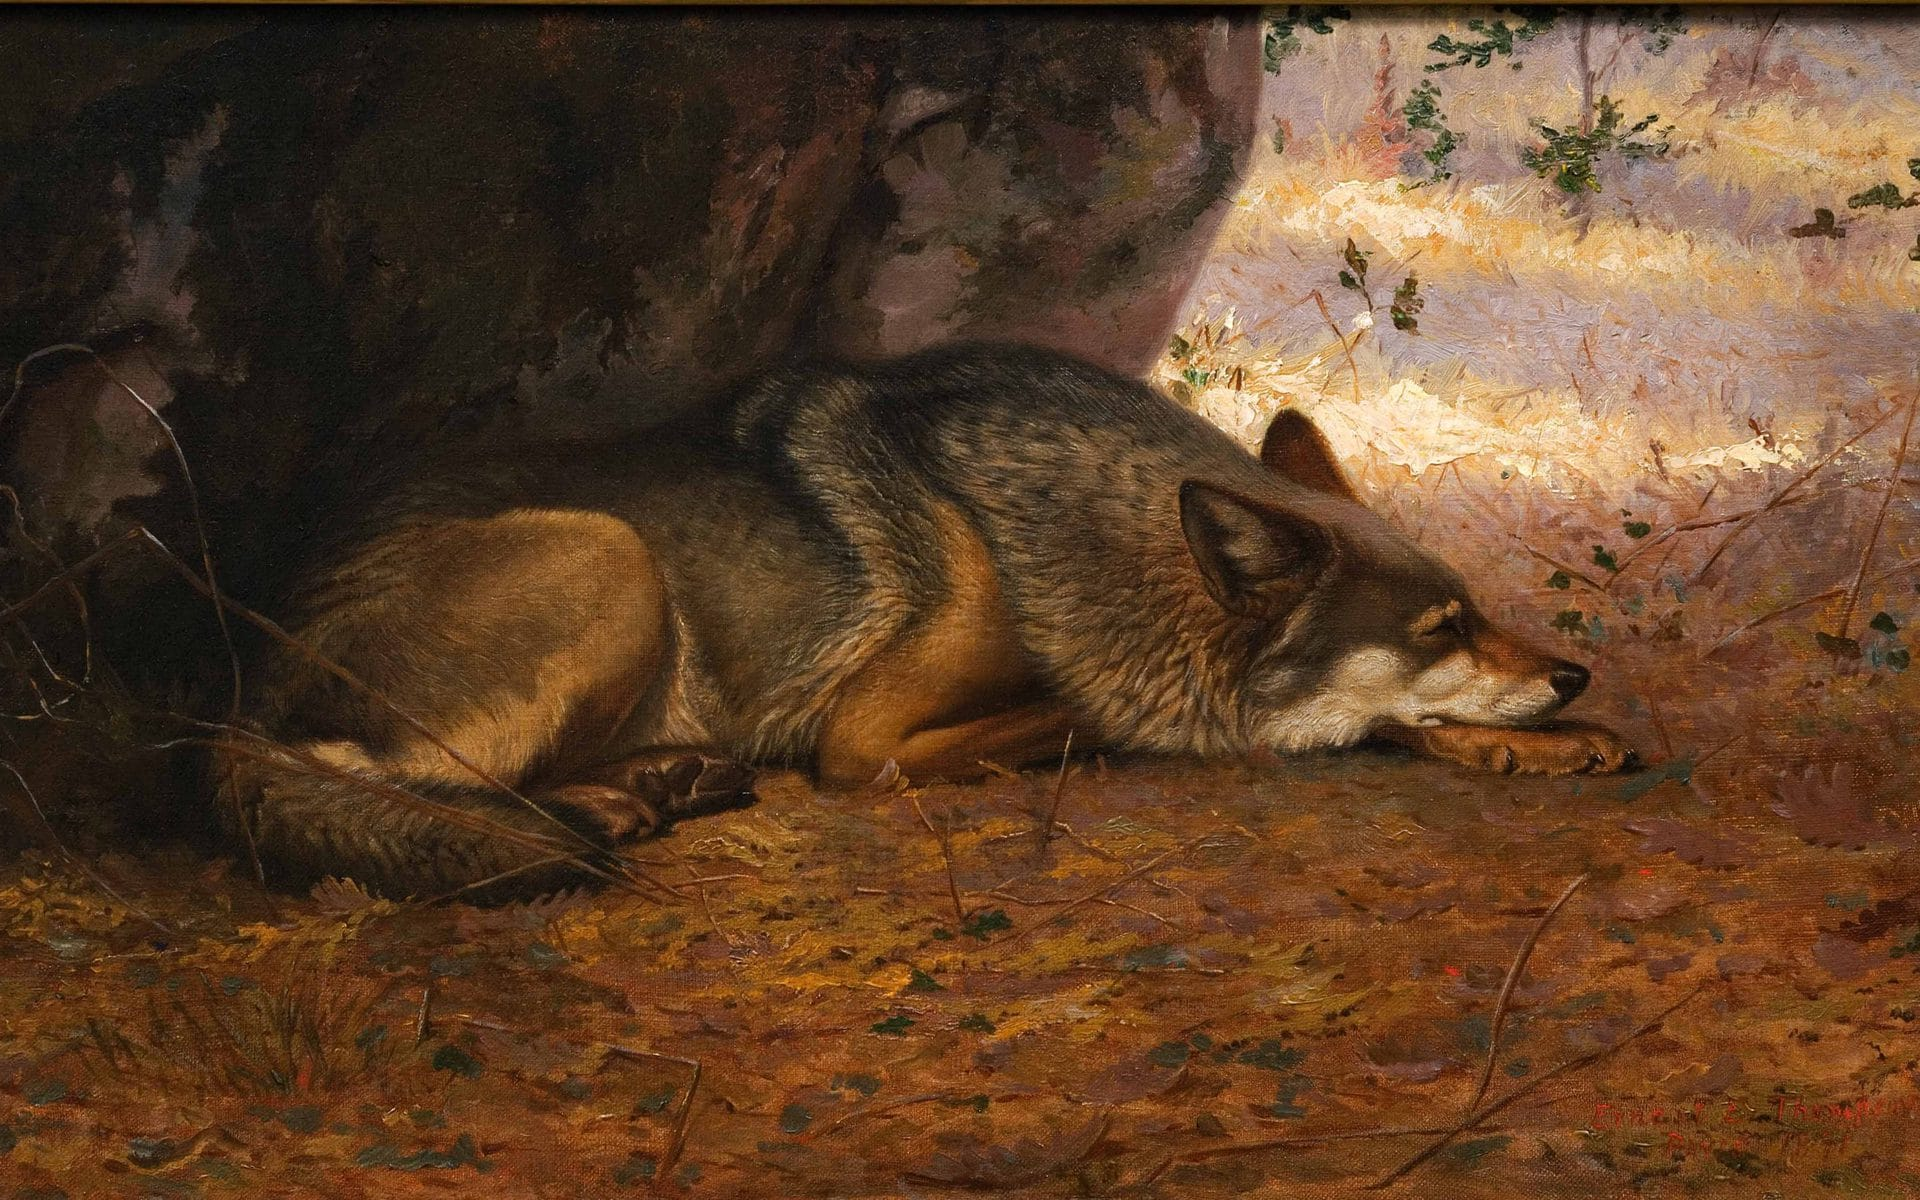 Sleeping Wolf in Paris Biography